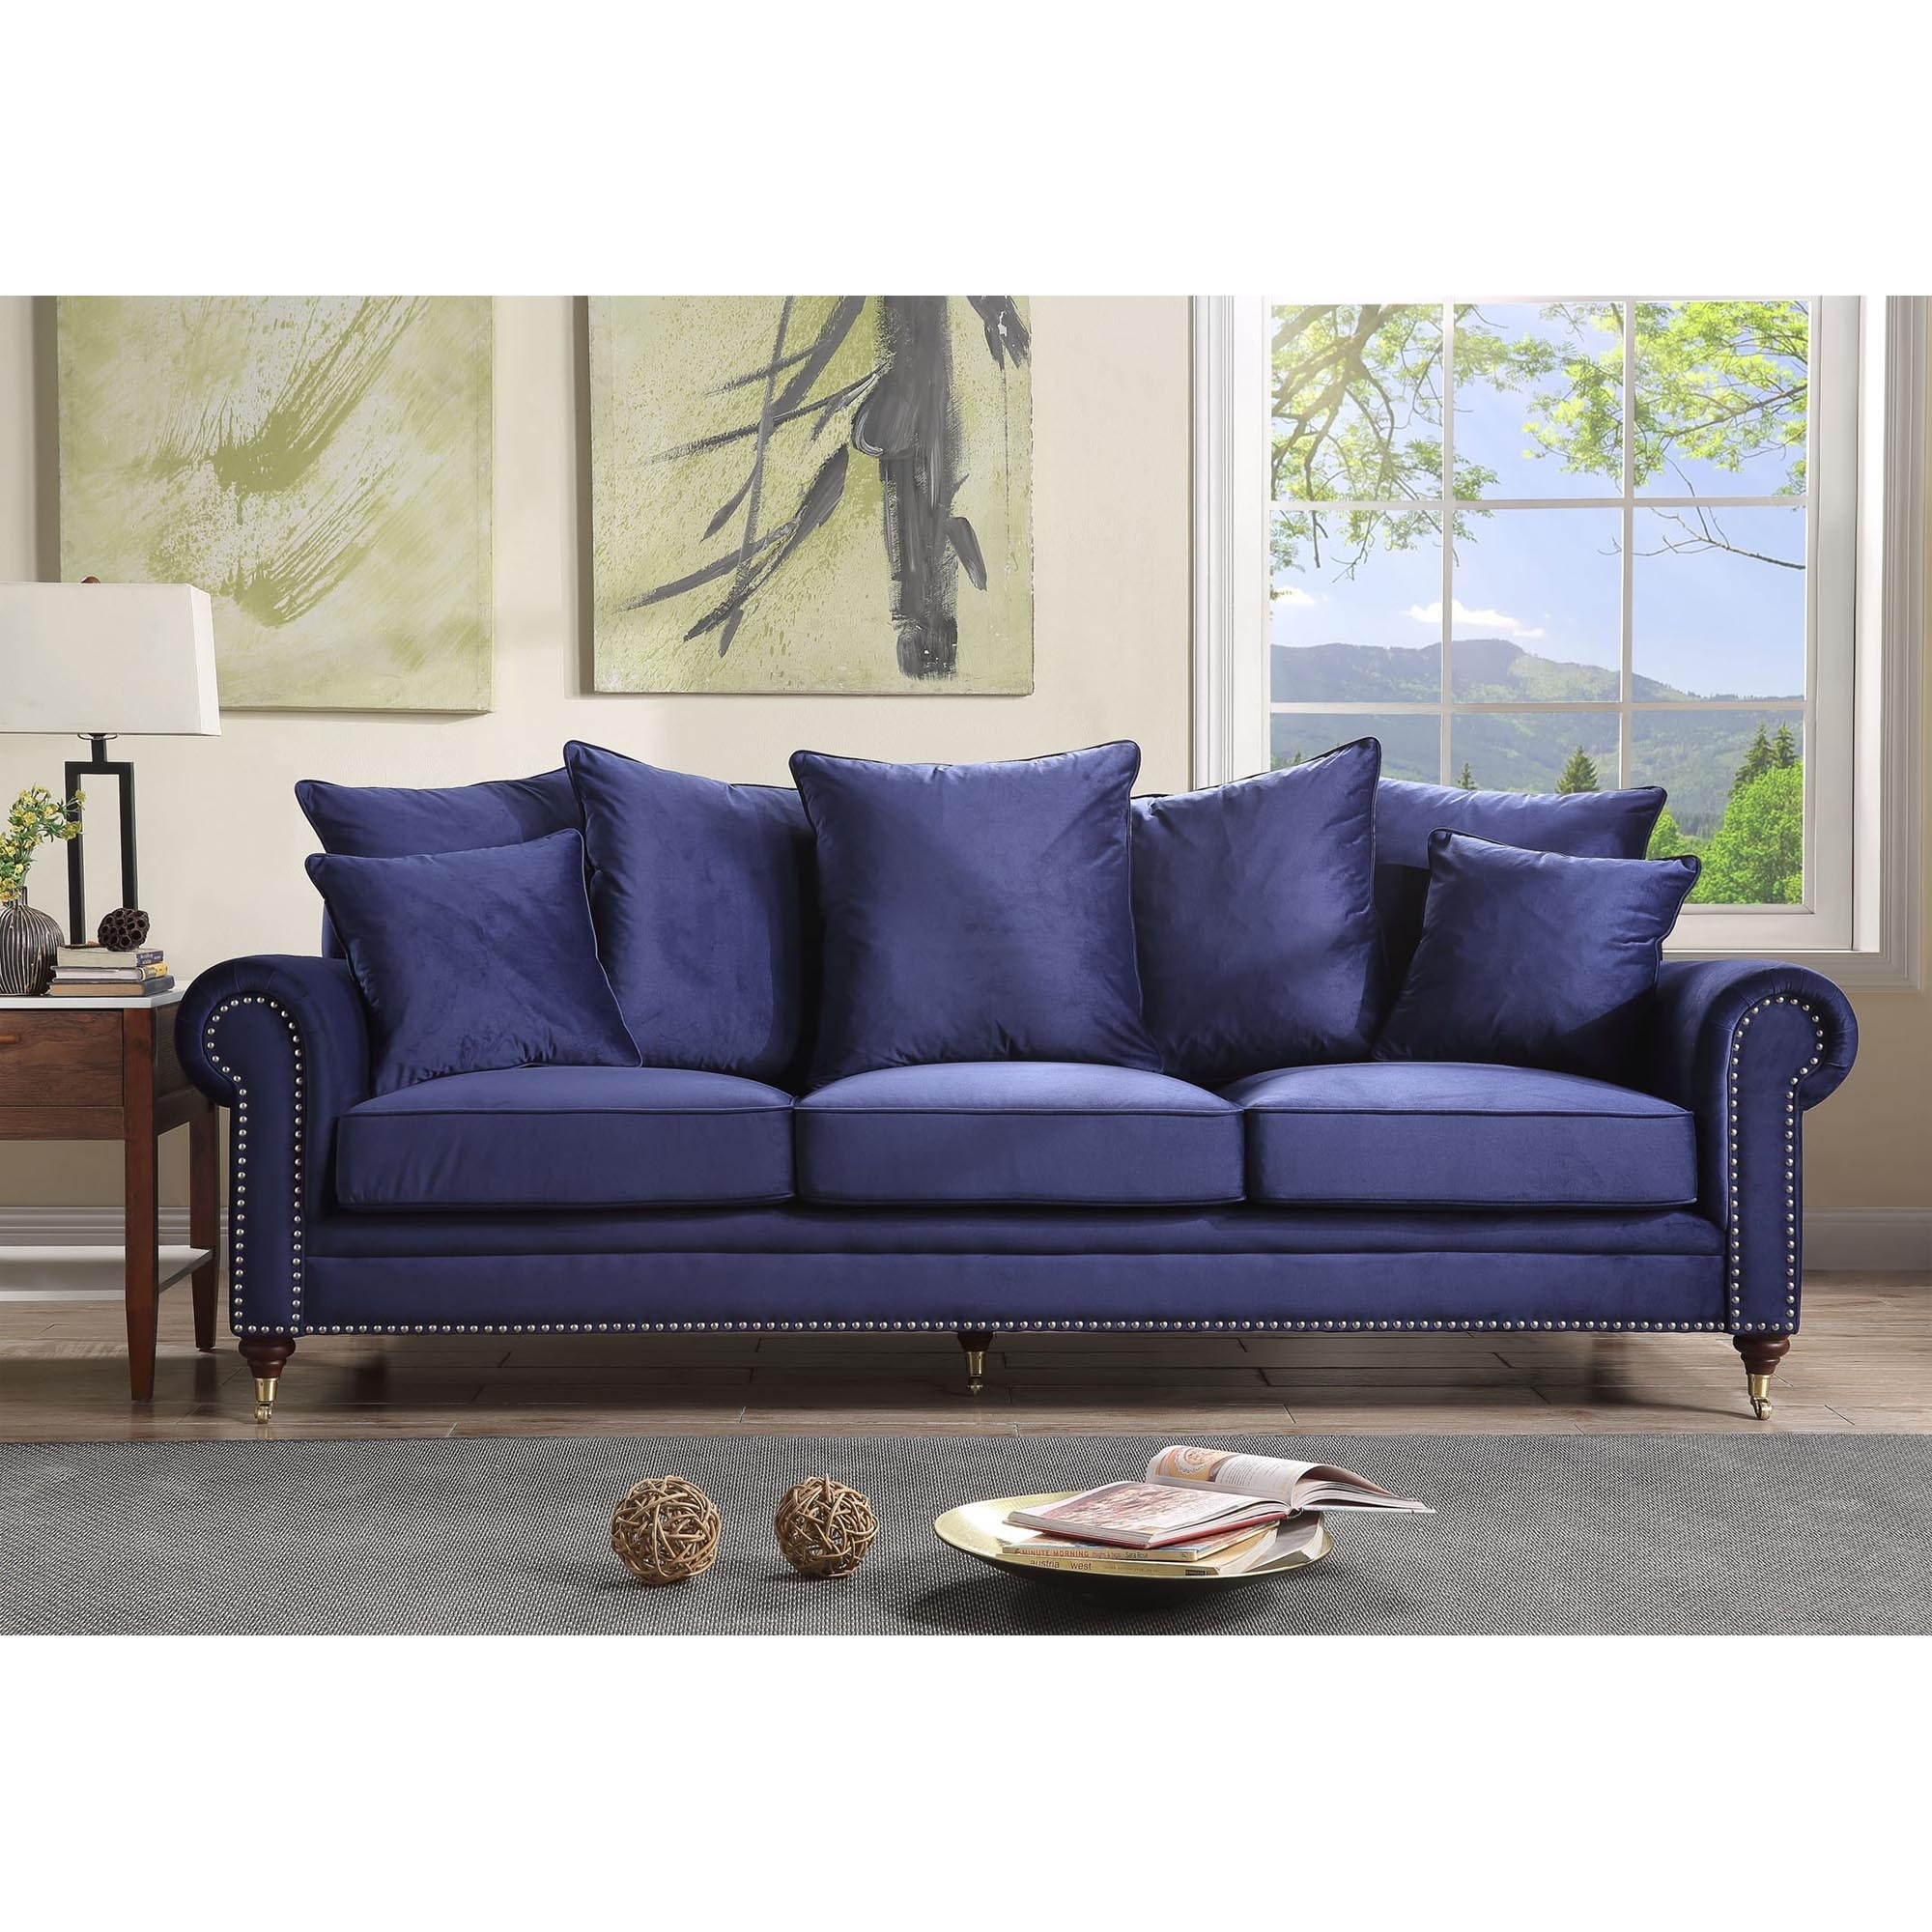 Hampton 3 Seater Royal Blue Sofa Sofa Homesdirect365